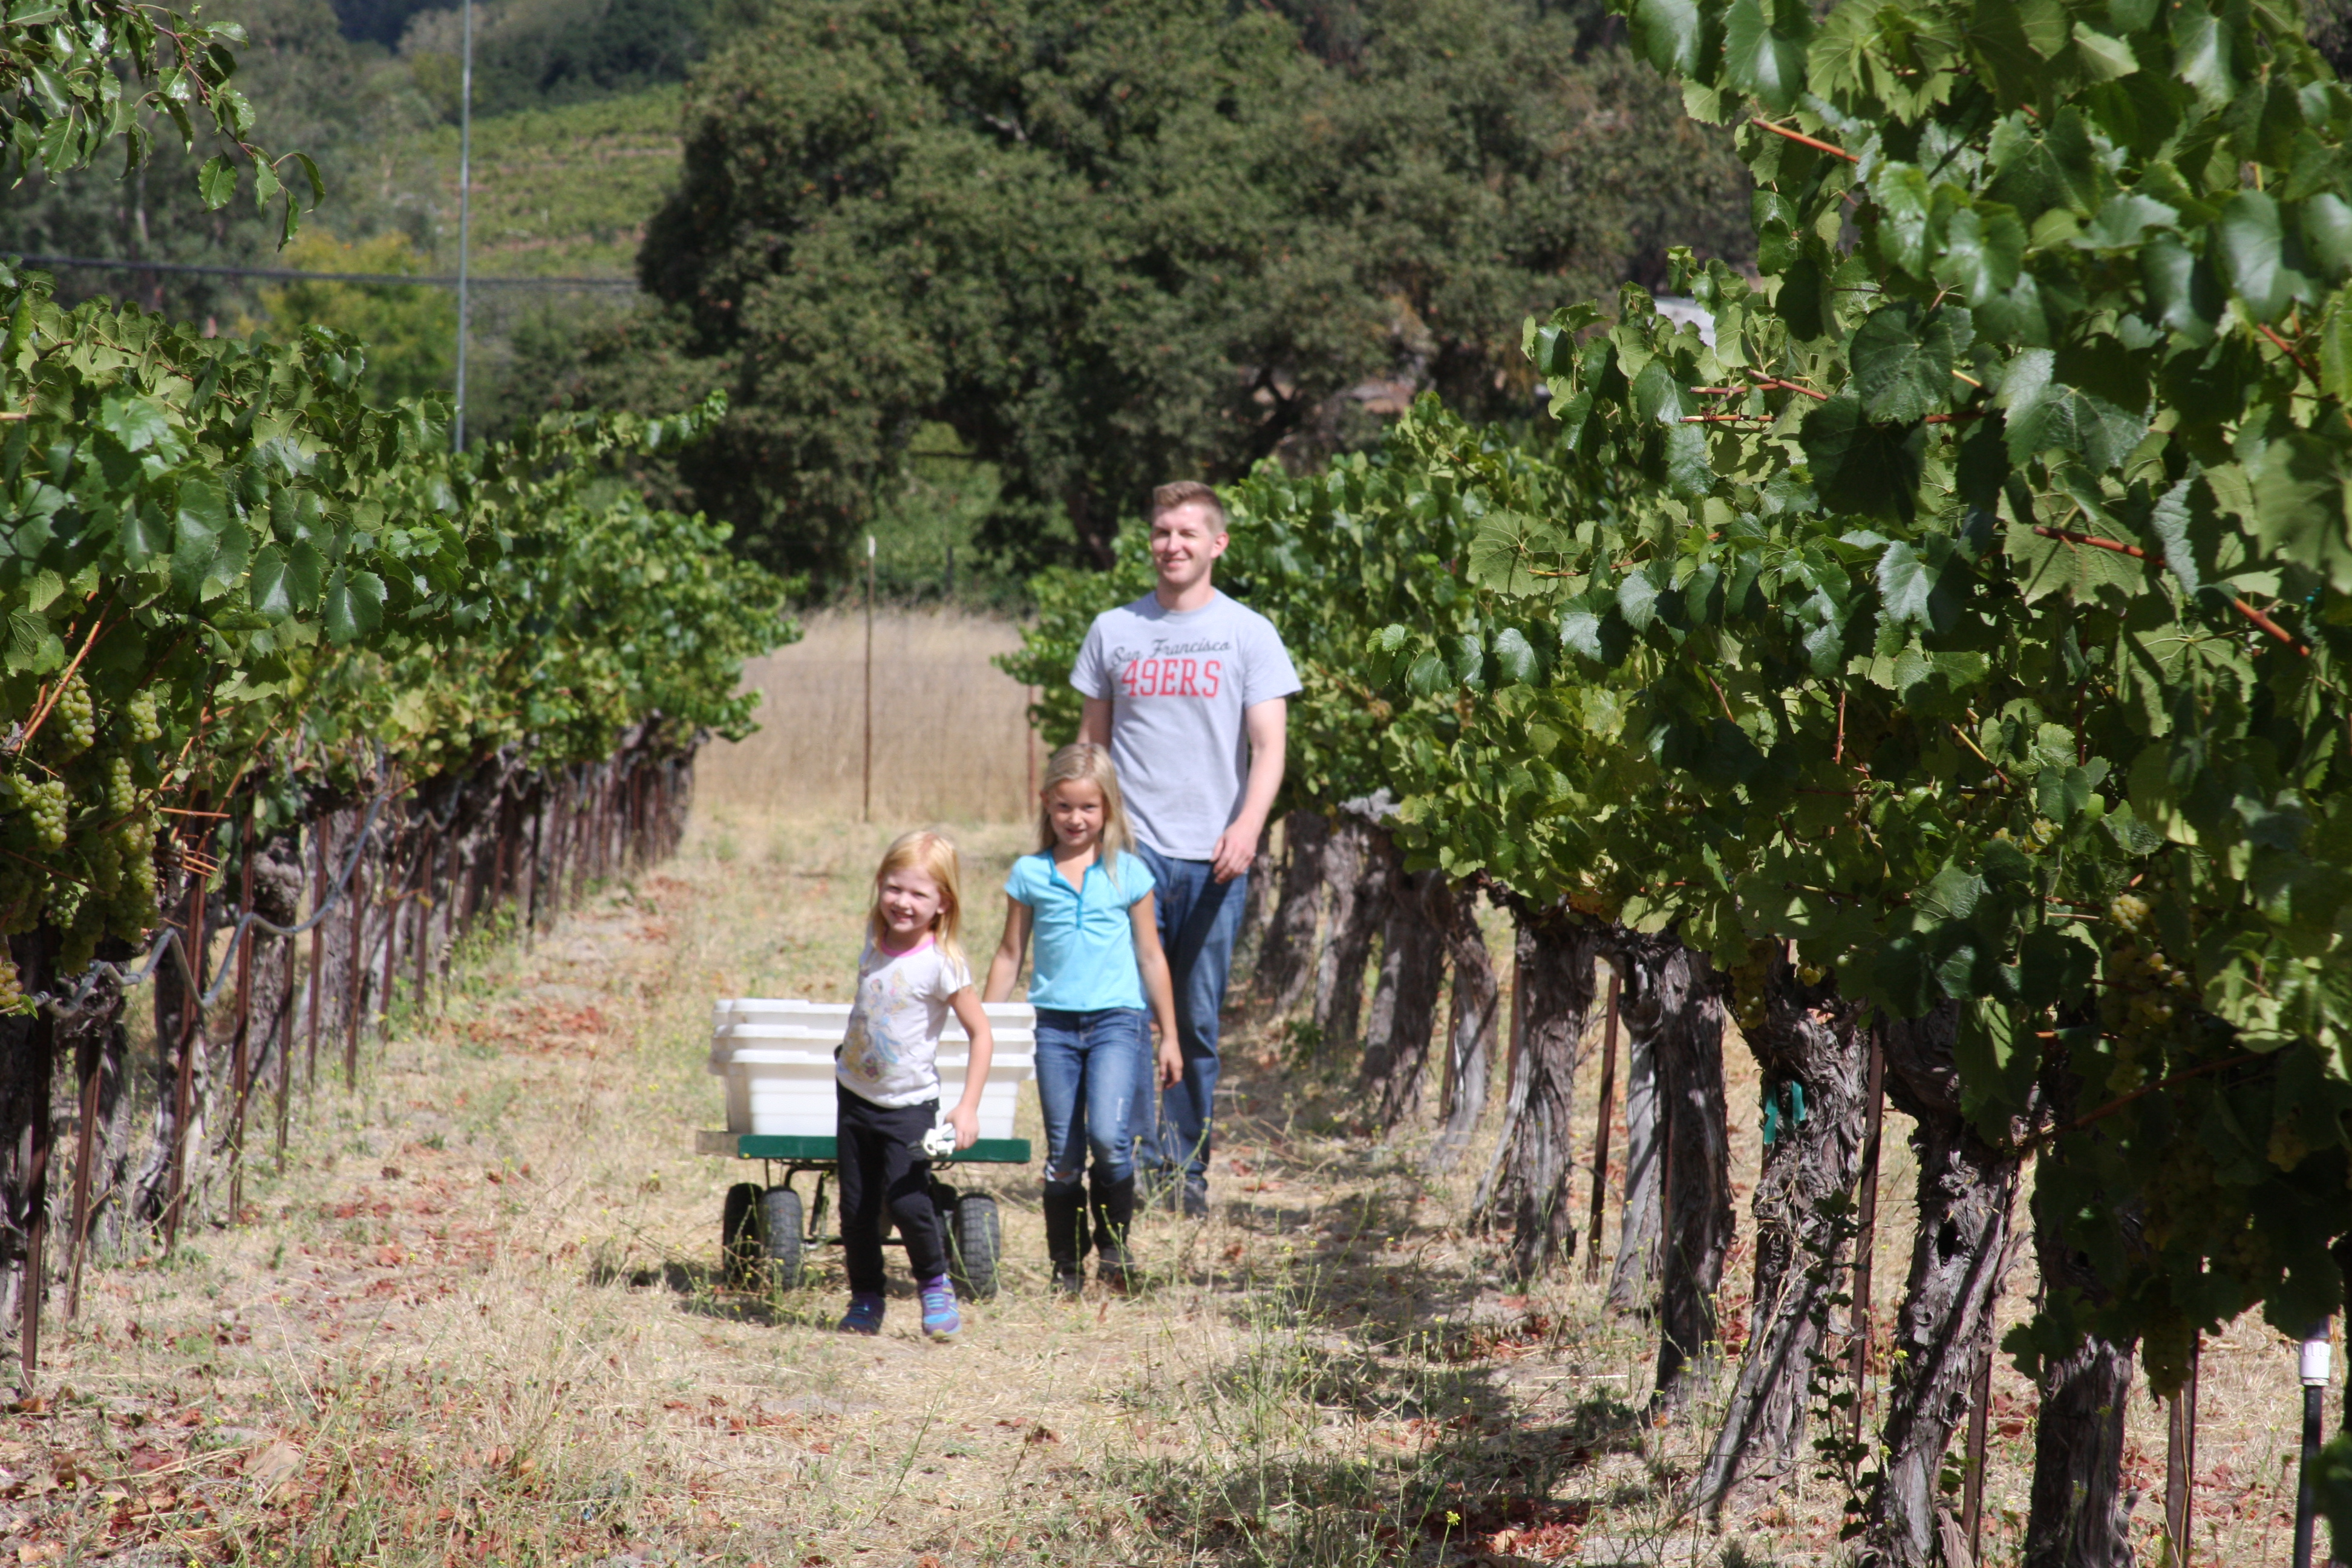 Nick and Girls in Vineyard